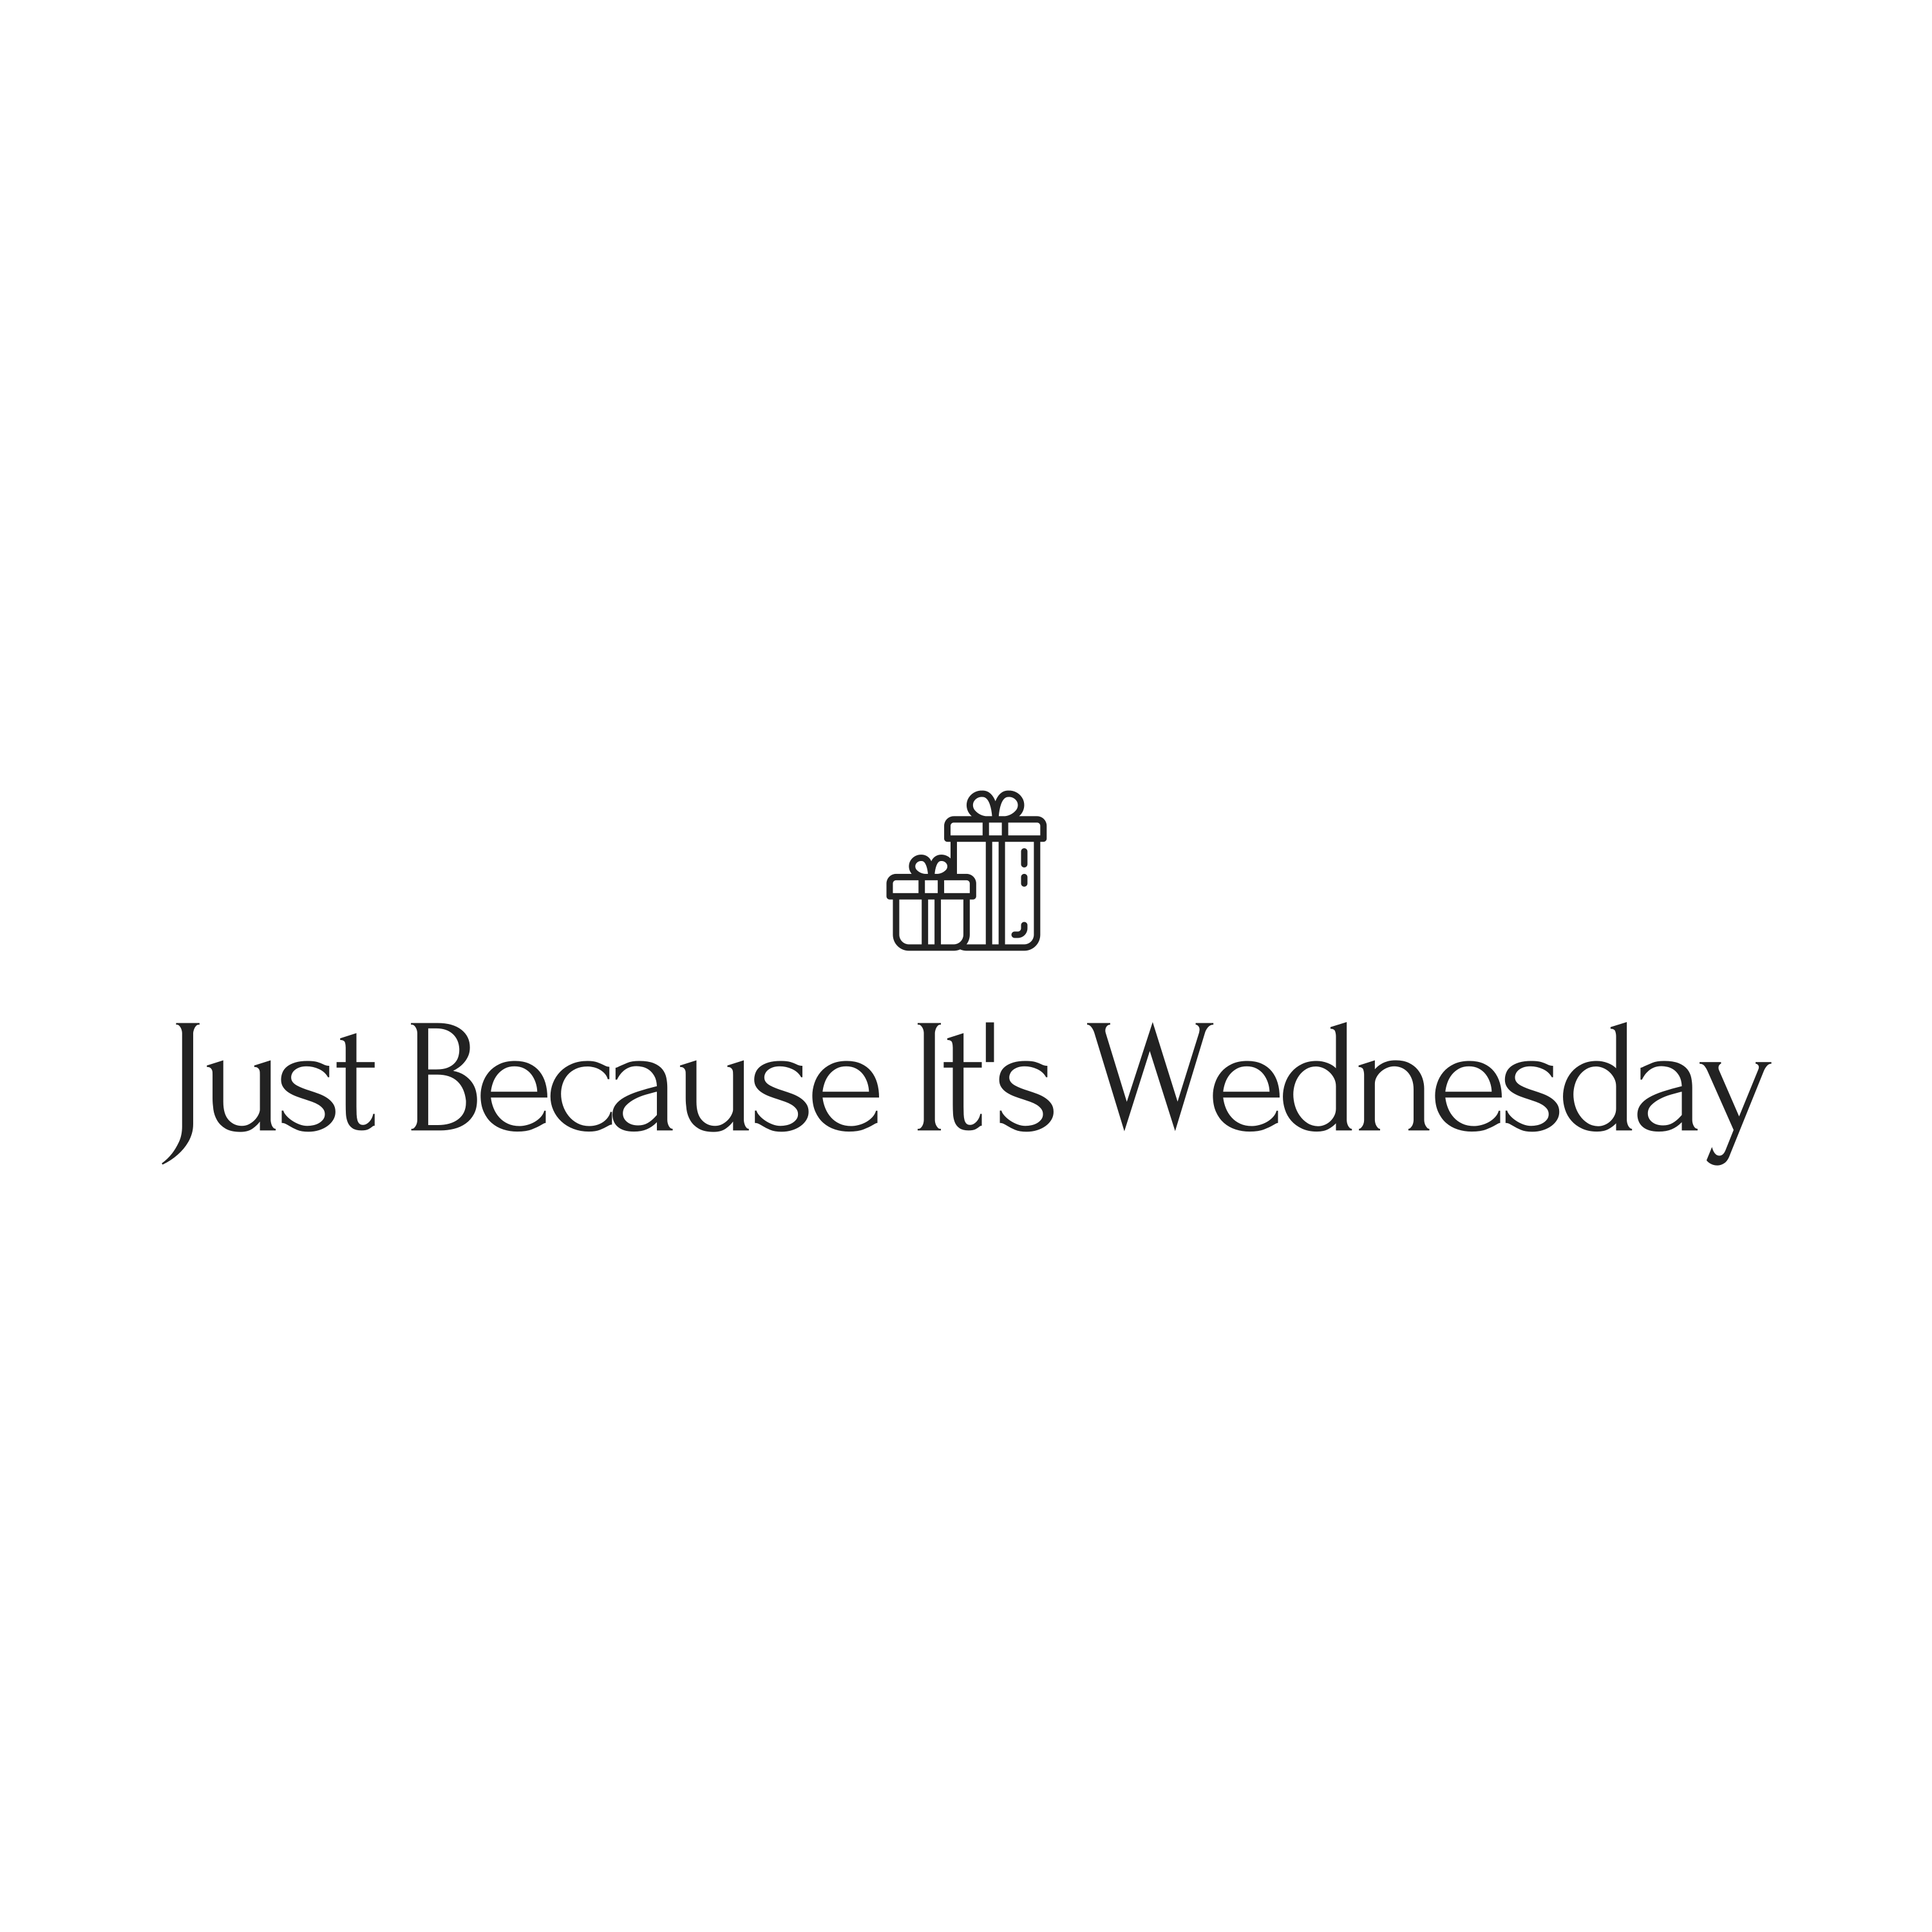 Just Because It's Wednesday